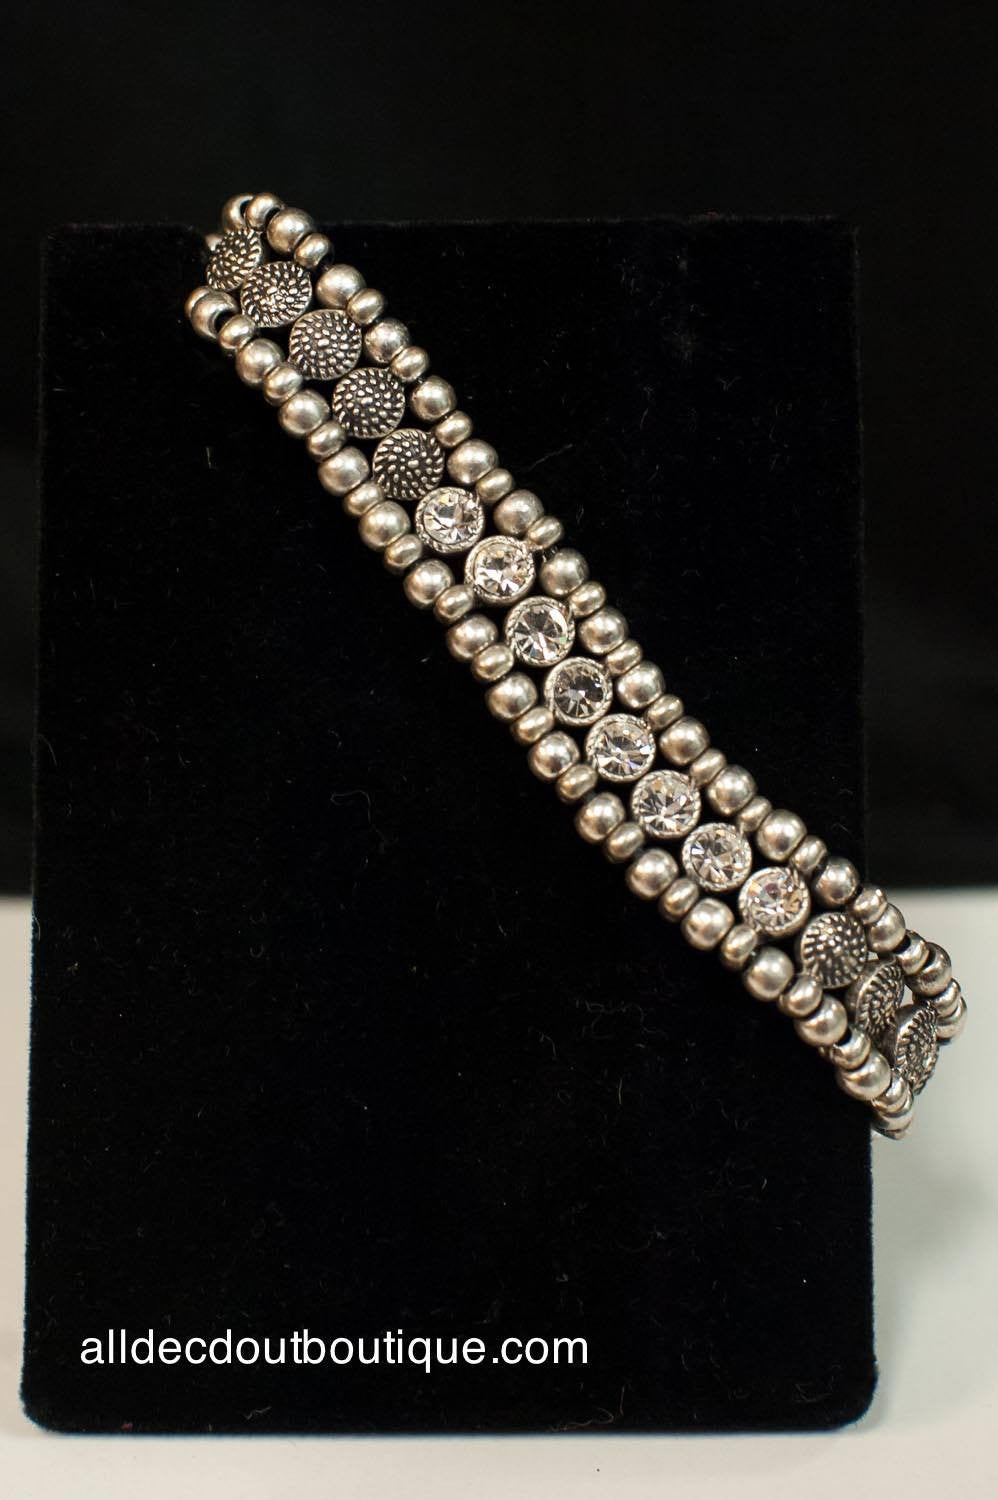 ADO | Beaded Adjustable Bracelet with Crystals - All Decd Out